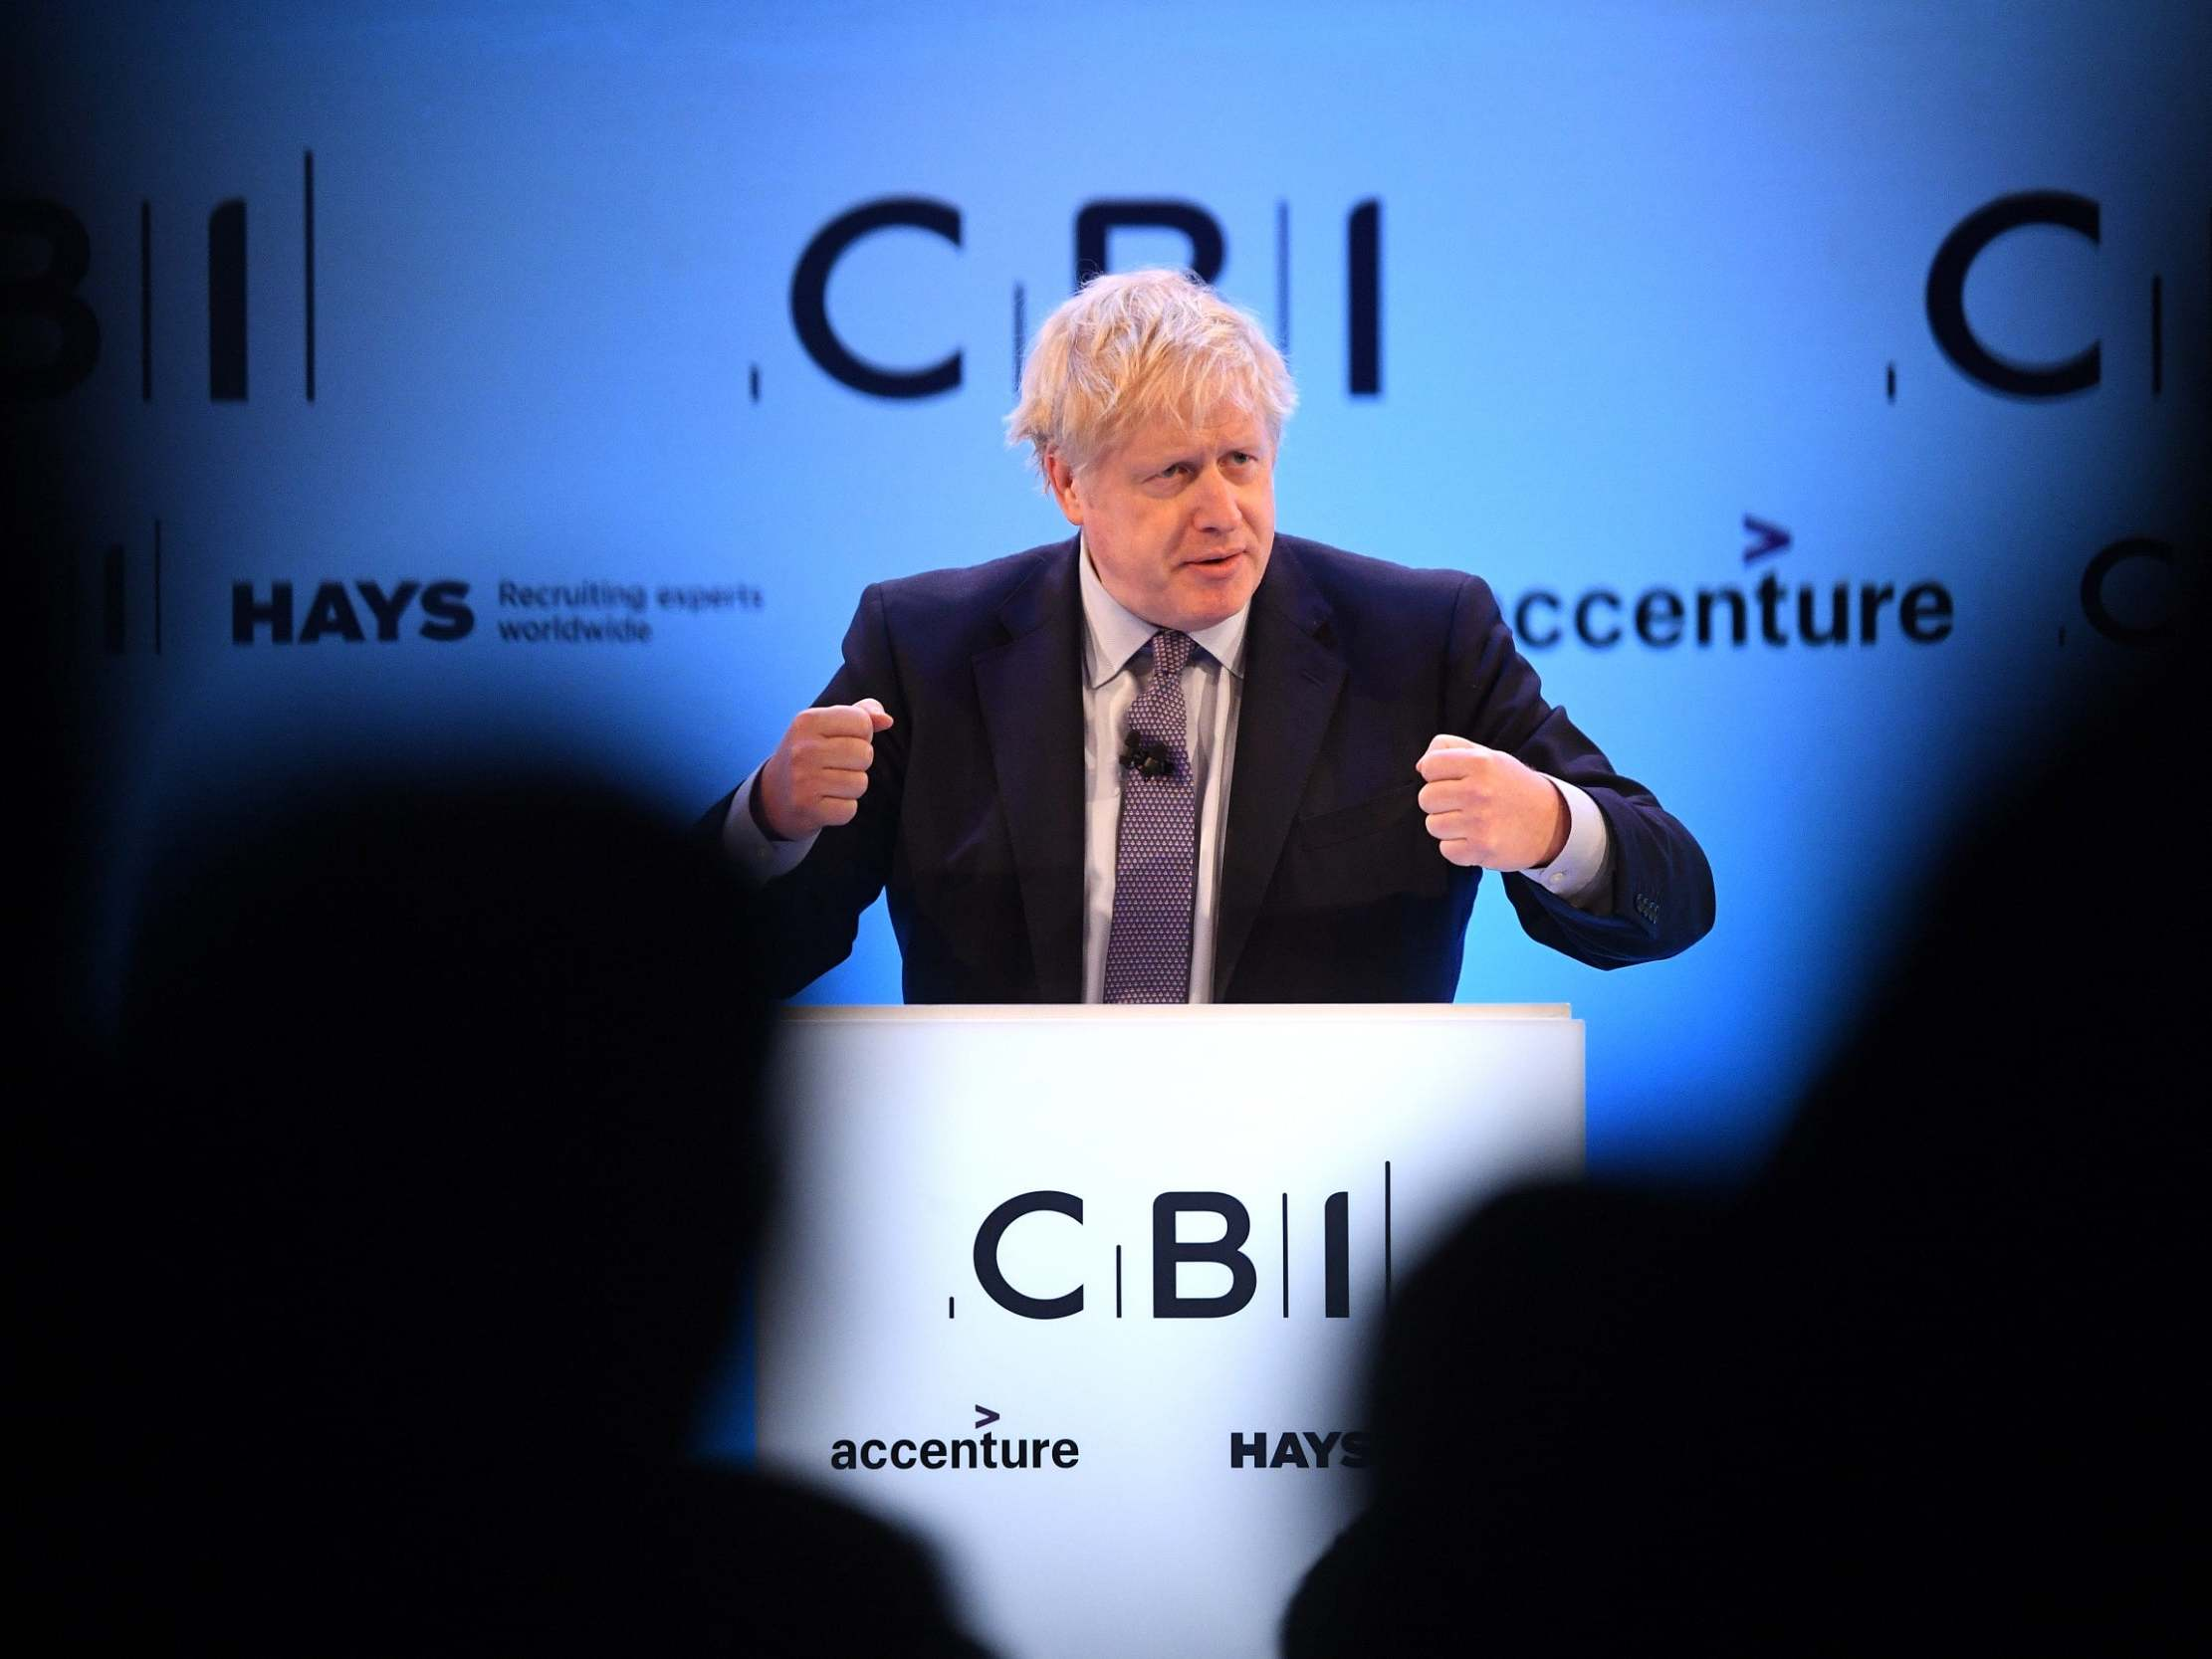 Only a truly skilful liar could lie as badly as Boris Johnson and get away with it